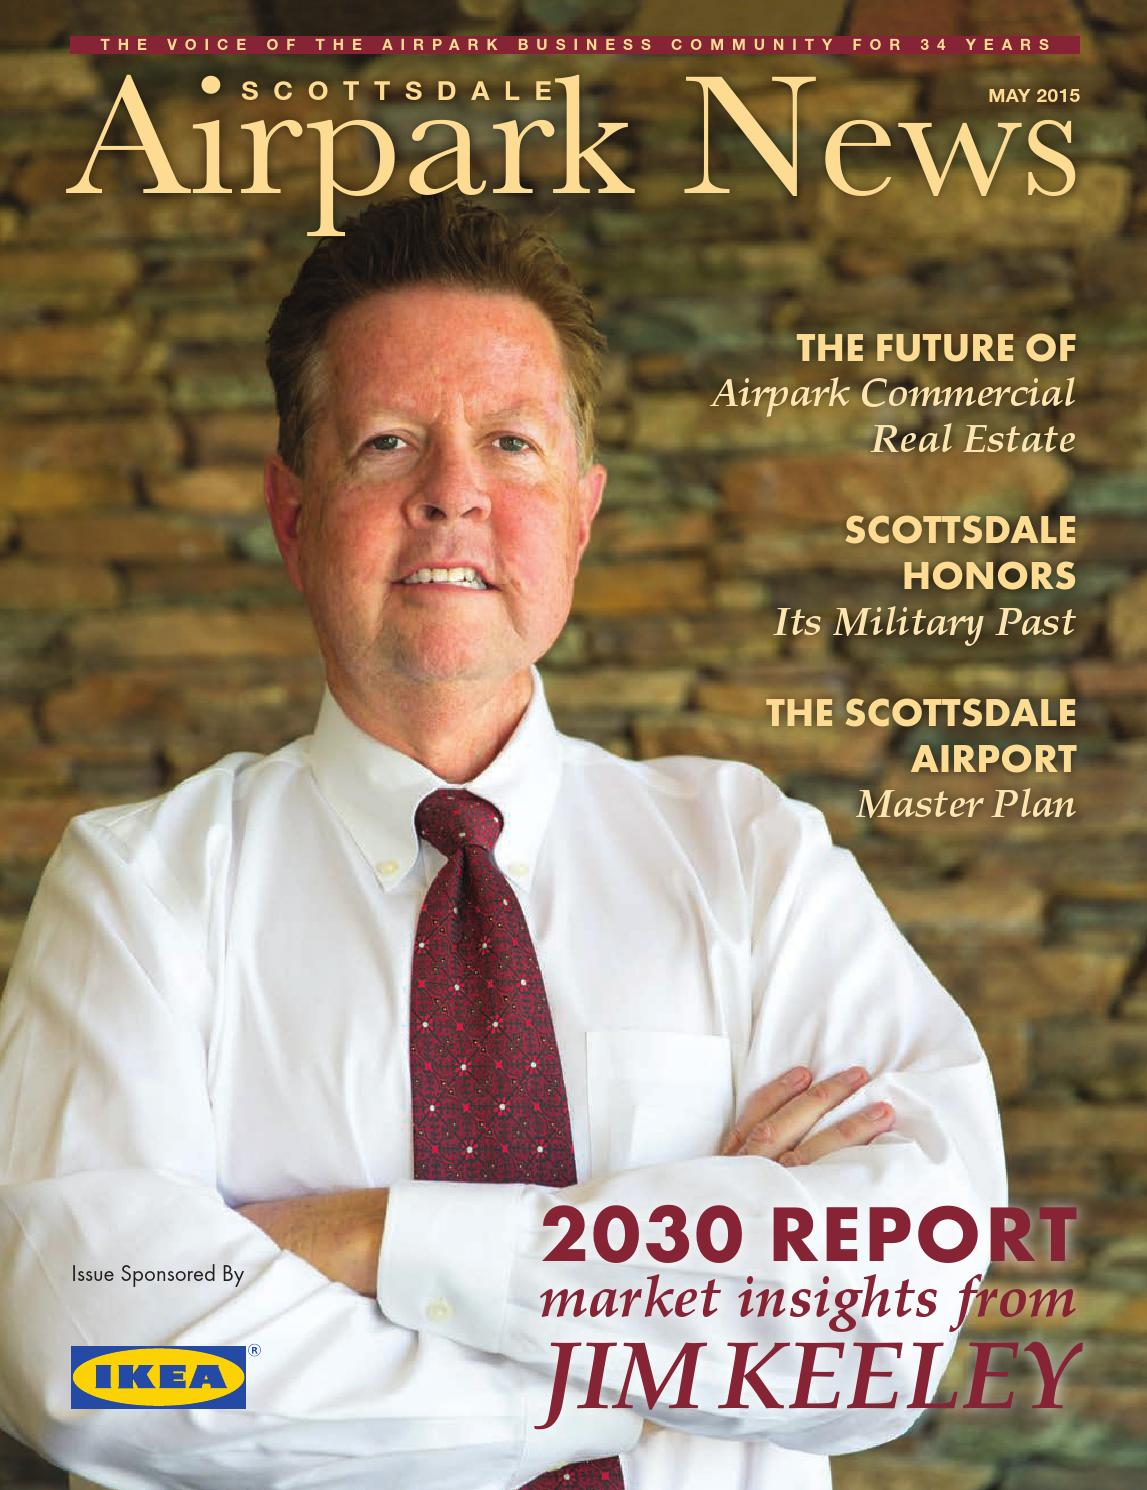 Scottsdale Airpark News - May 2015 by Times Media Group - issuu